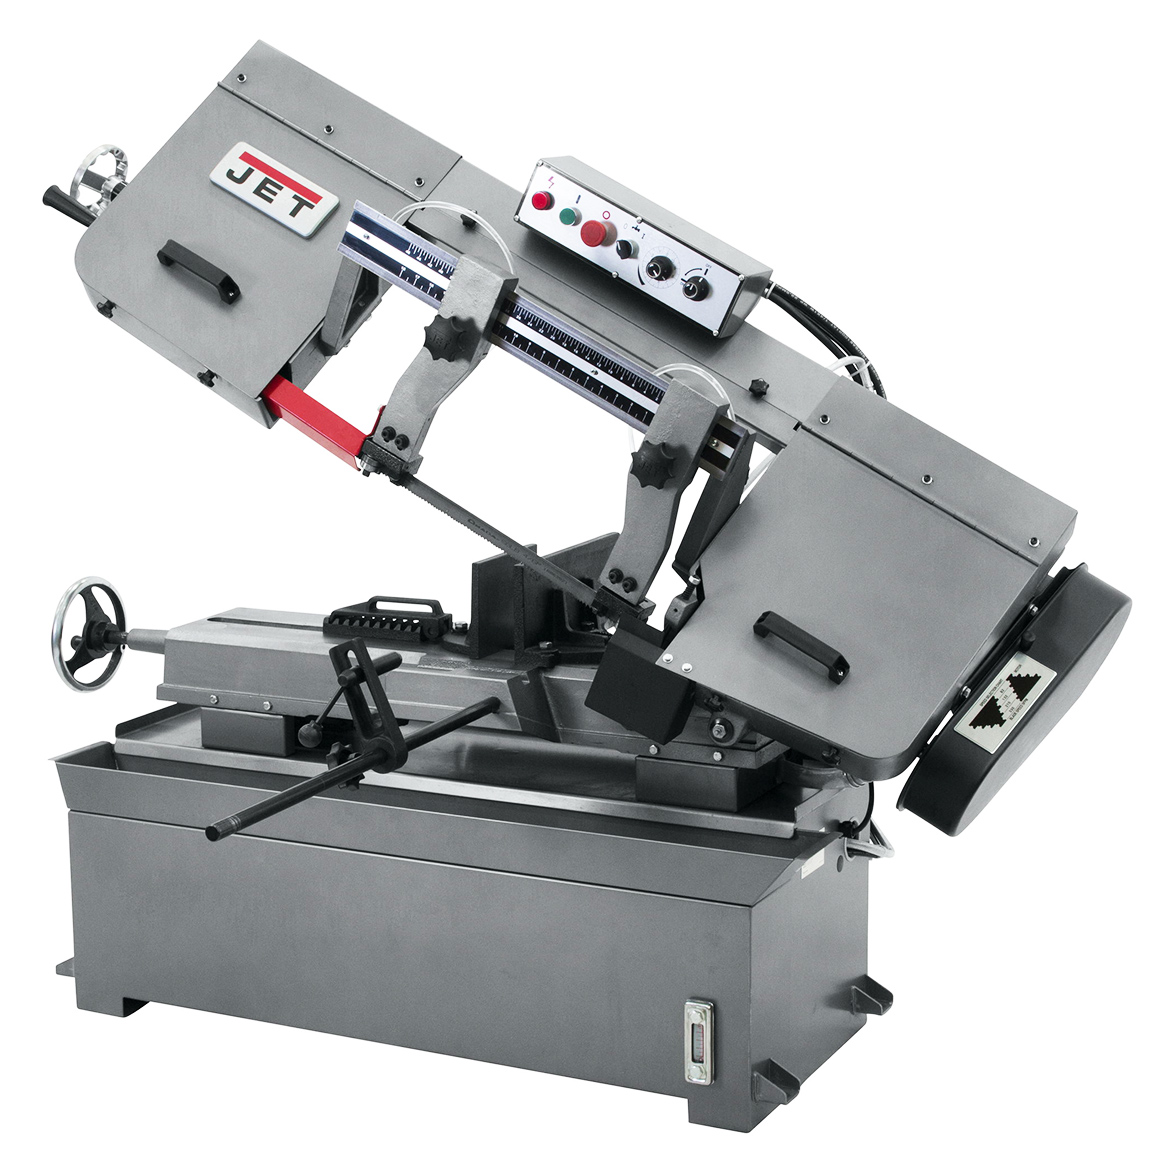 Jet 414473 HSB-1018W, 10 in. x 18 in. 2 HP 1-Phase Horizontal Band Saw